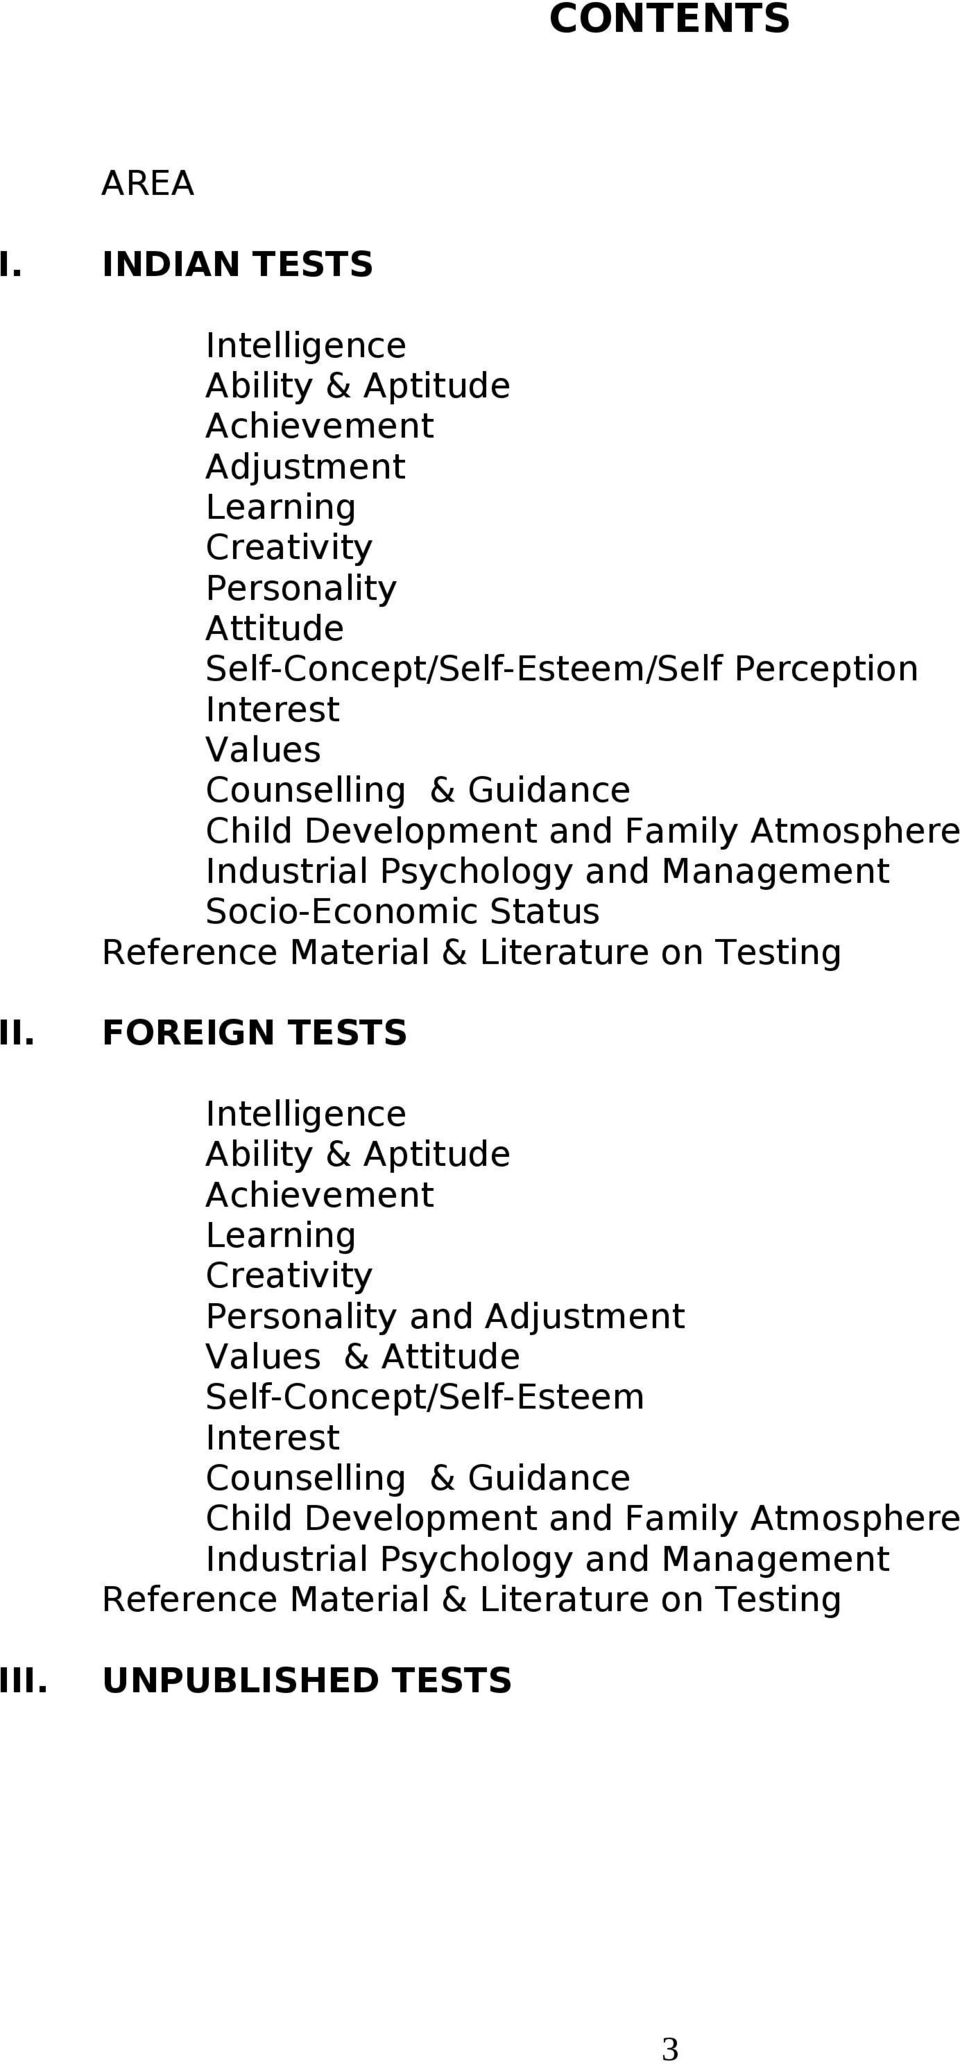 UNPUBLISHED TESTS 3. Counselling & Guidance Child Development and Family  Atmosphere Industrial Psychology and Management Socio-Economic Status